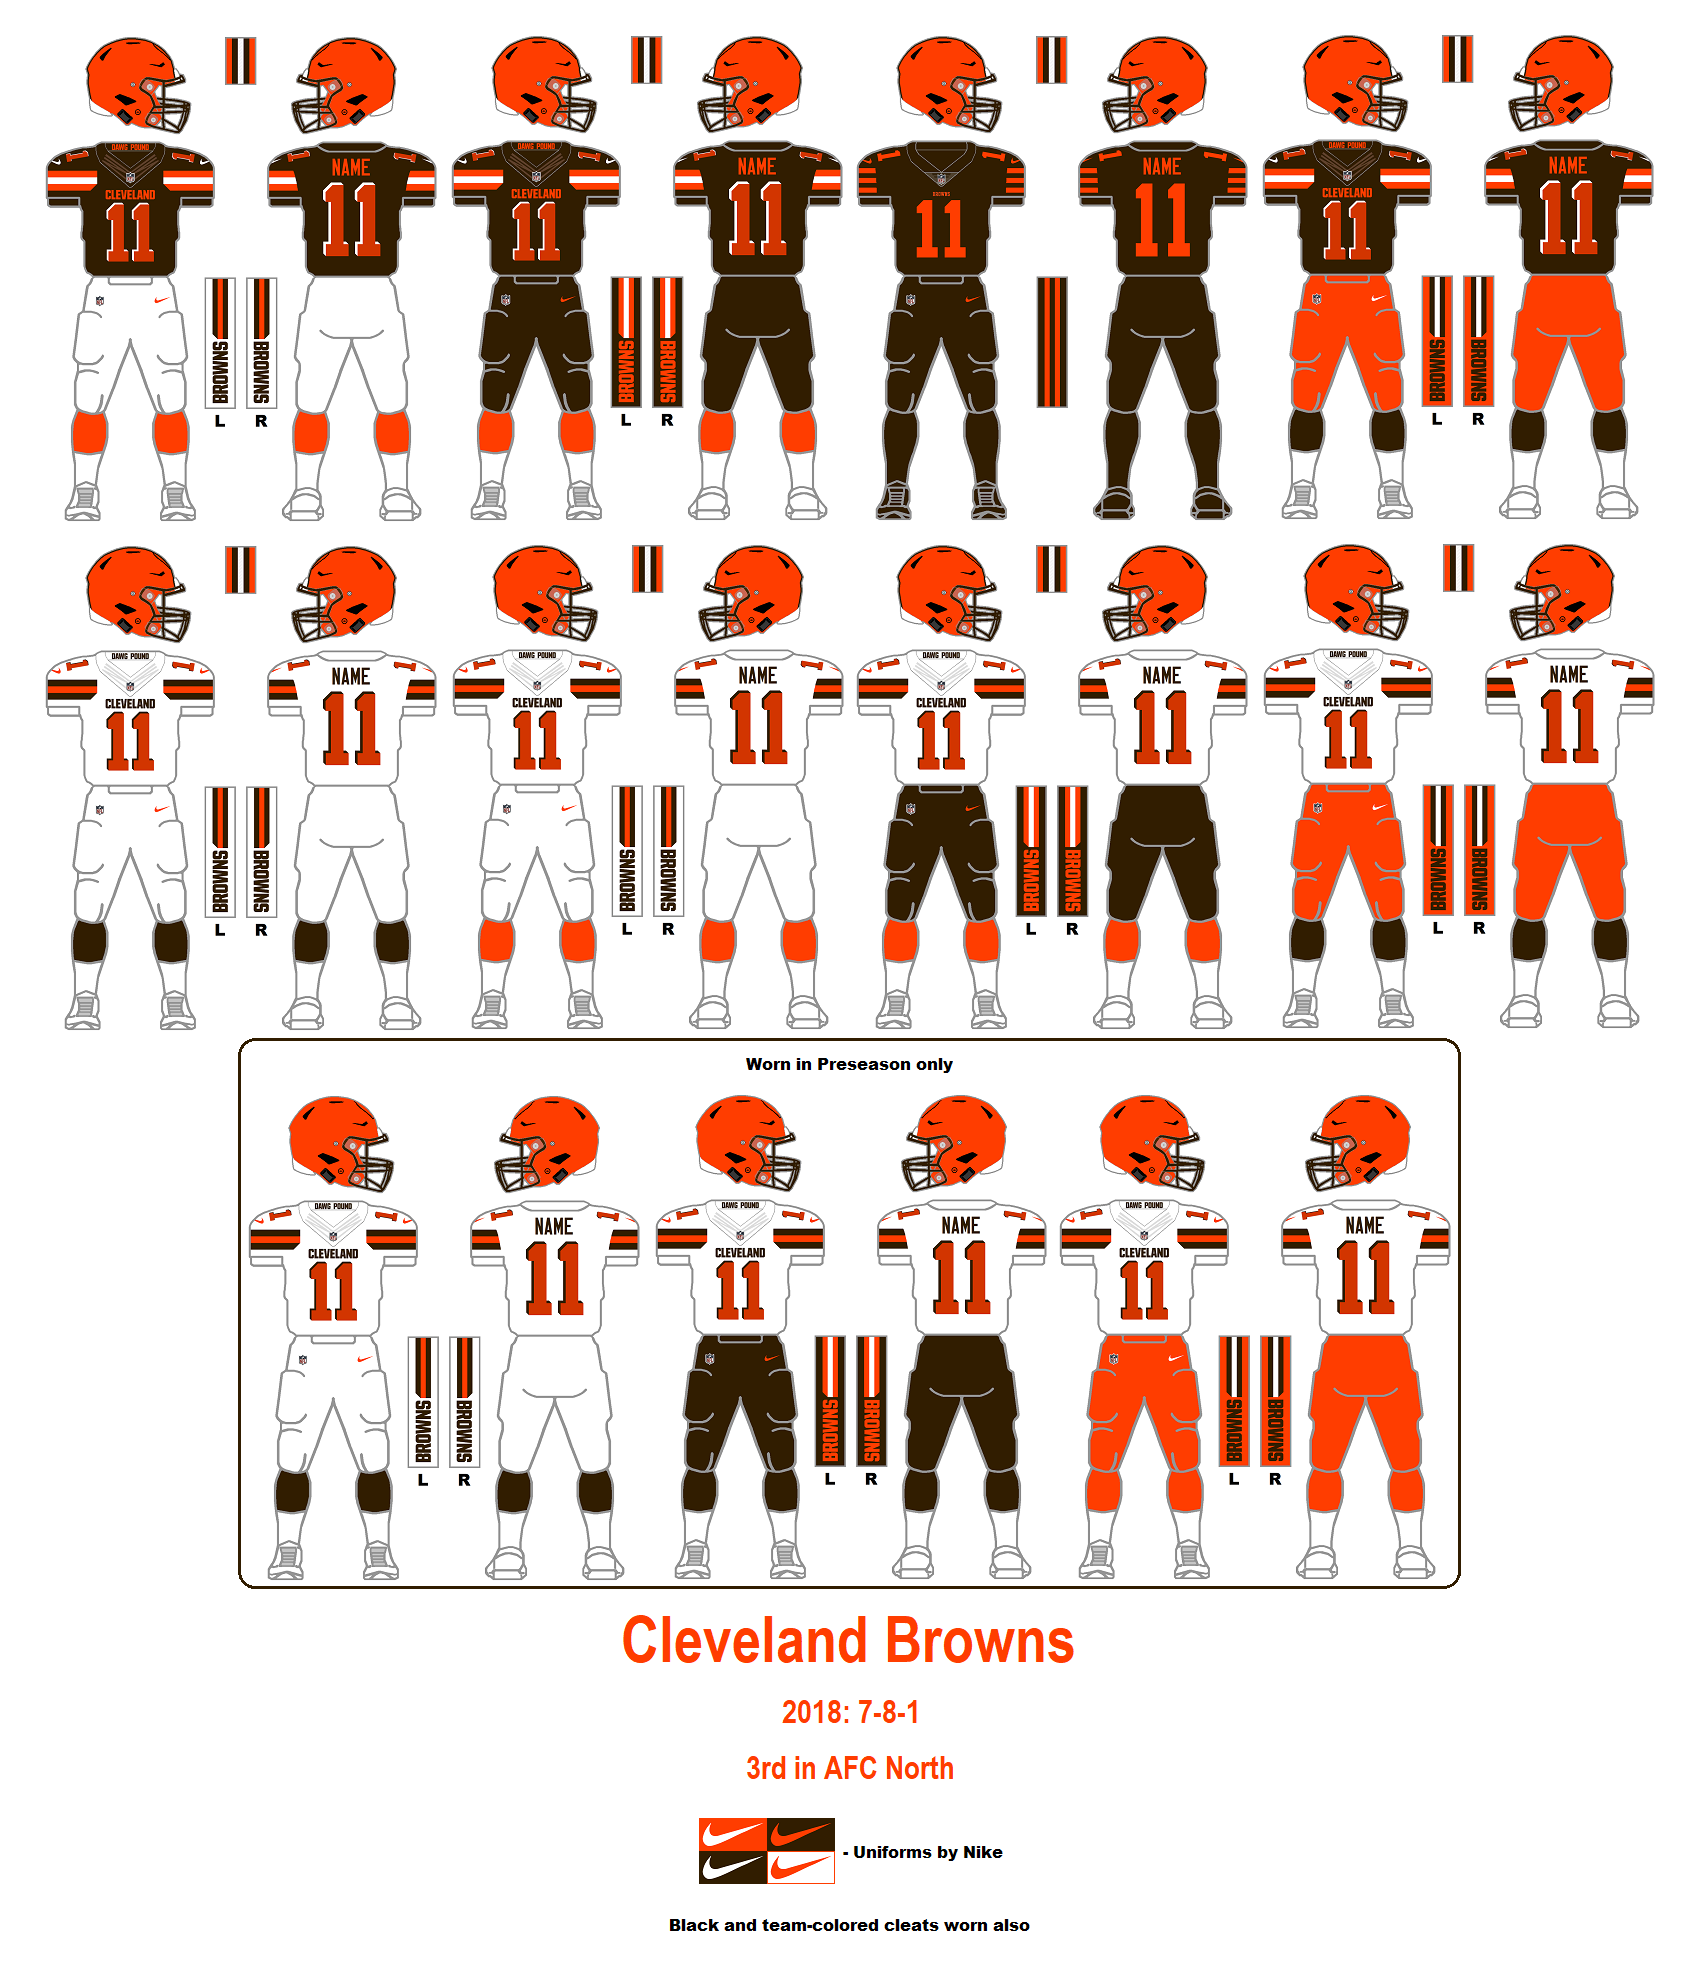 e82e8d28 Vince: In some ways, even talking about these current Browns uniforms is a  waste of time. They debuted four years ago, they were horrible, everyone  knew ...